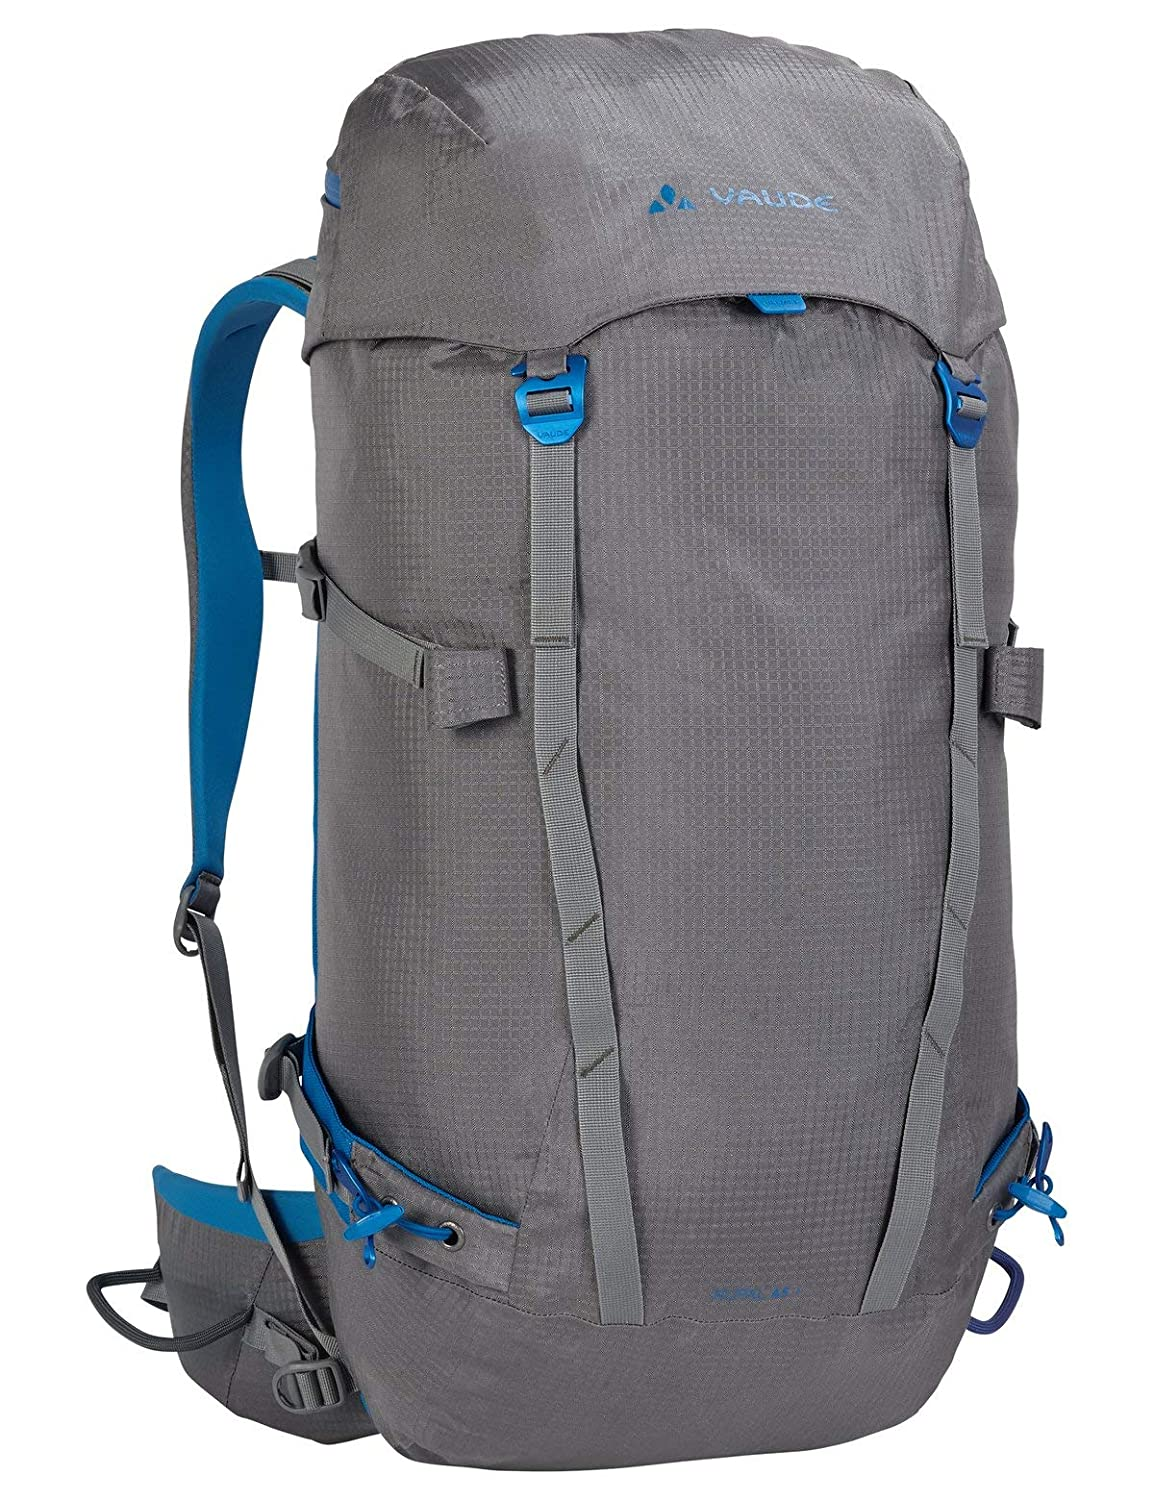 VAUDE Anthracite Rupal 45+ B07R3WTRFL Backpack, Backpack, Anthracite [並行輸入品] B07R3WTRFL, 野球用品ベースボールタウン:8231c3f5 --- bulkcollection.top